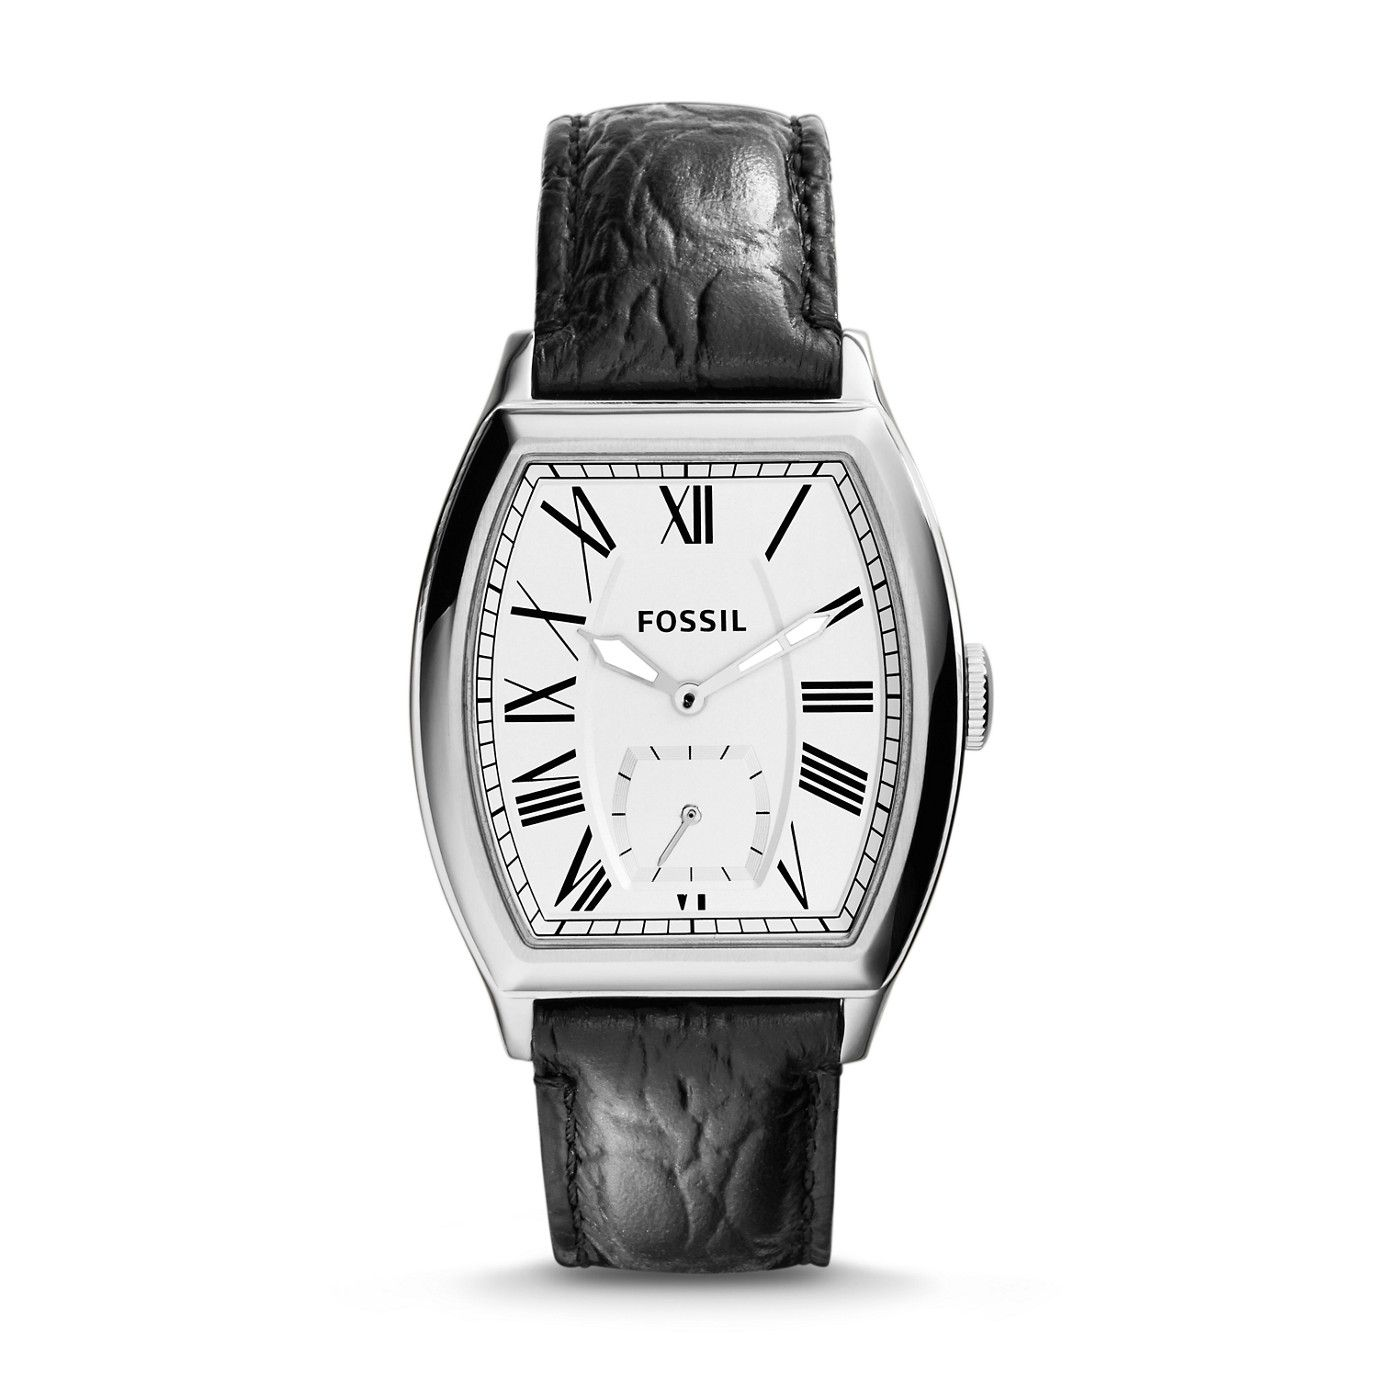 Fossil Narrator Two-Hand Leather Watch - Black Croco| FOSSIL® Watches